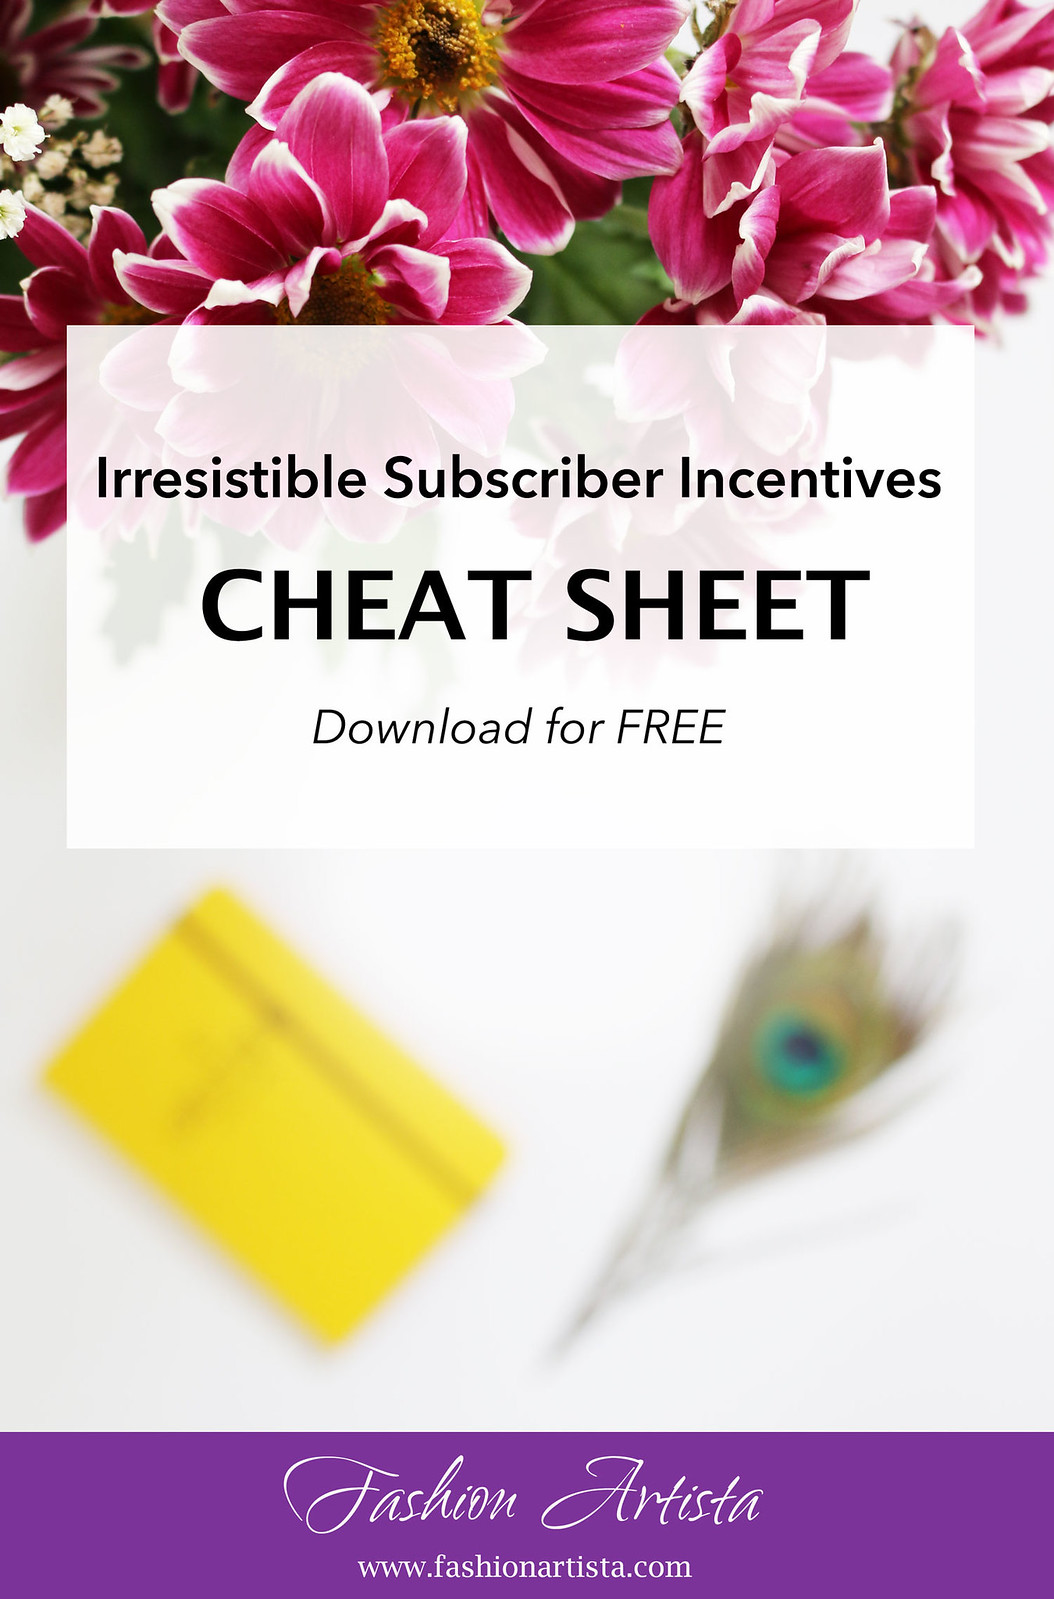 www.fashionartista.com download this FREE cheat sheet with irresistible subscriber incentives